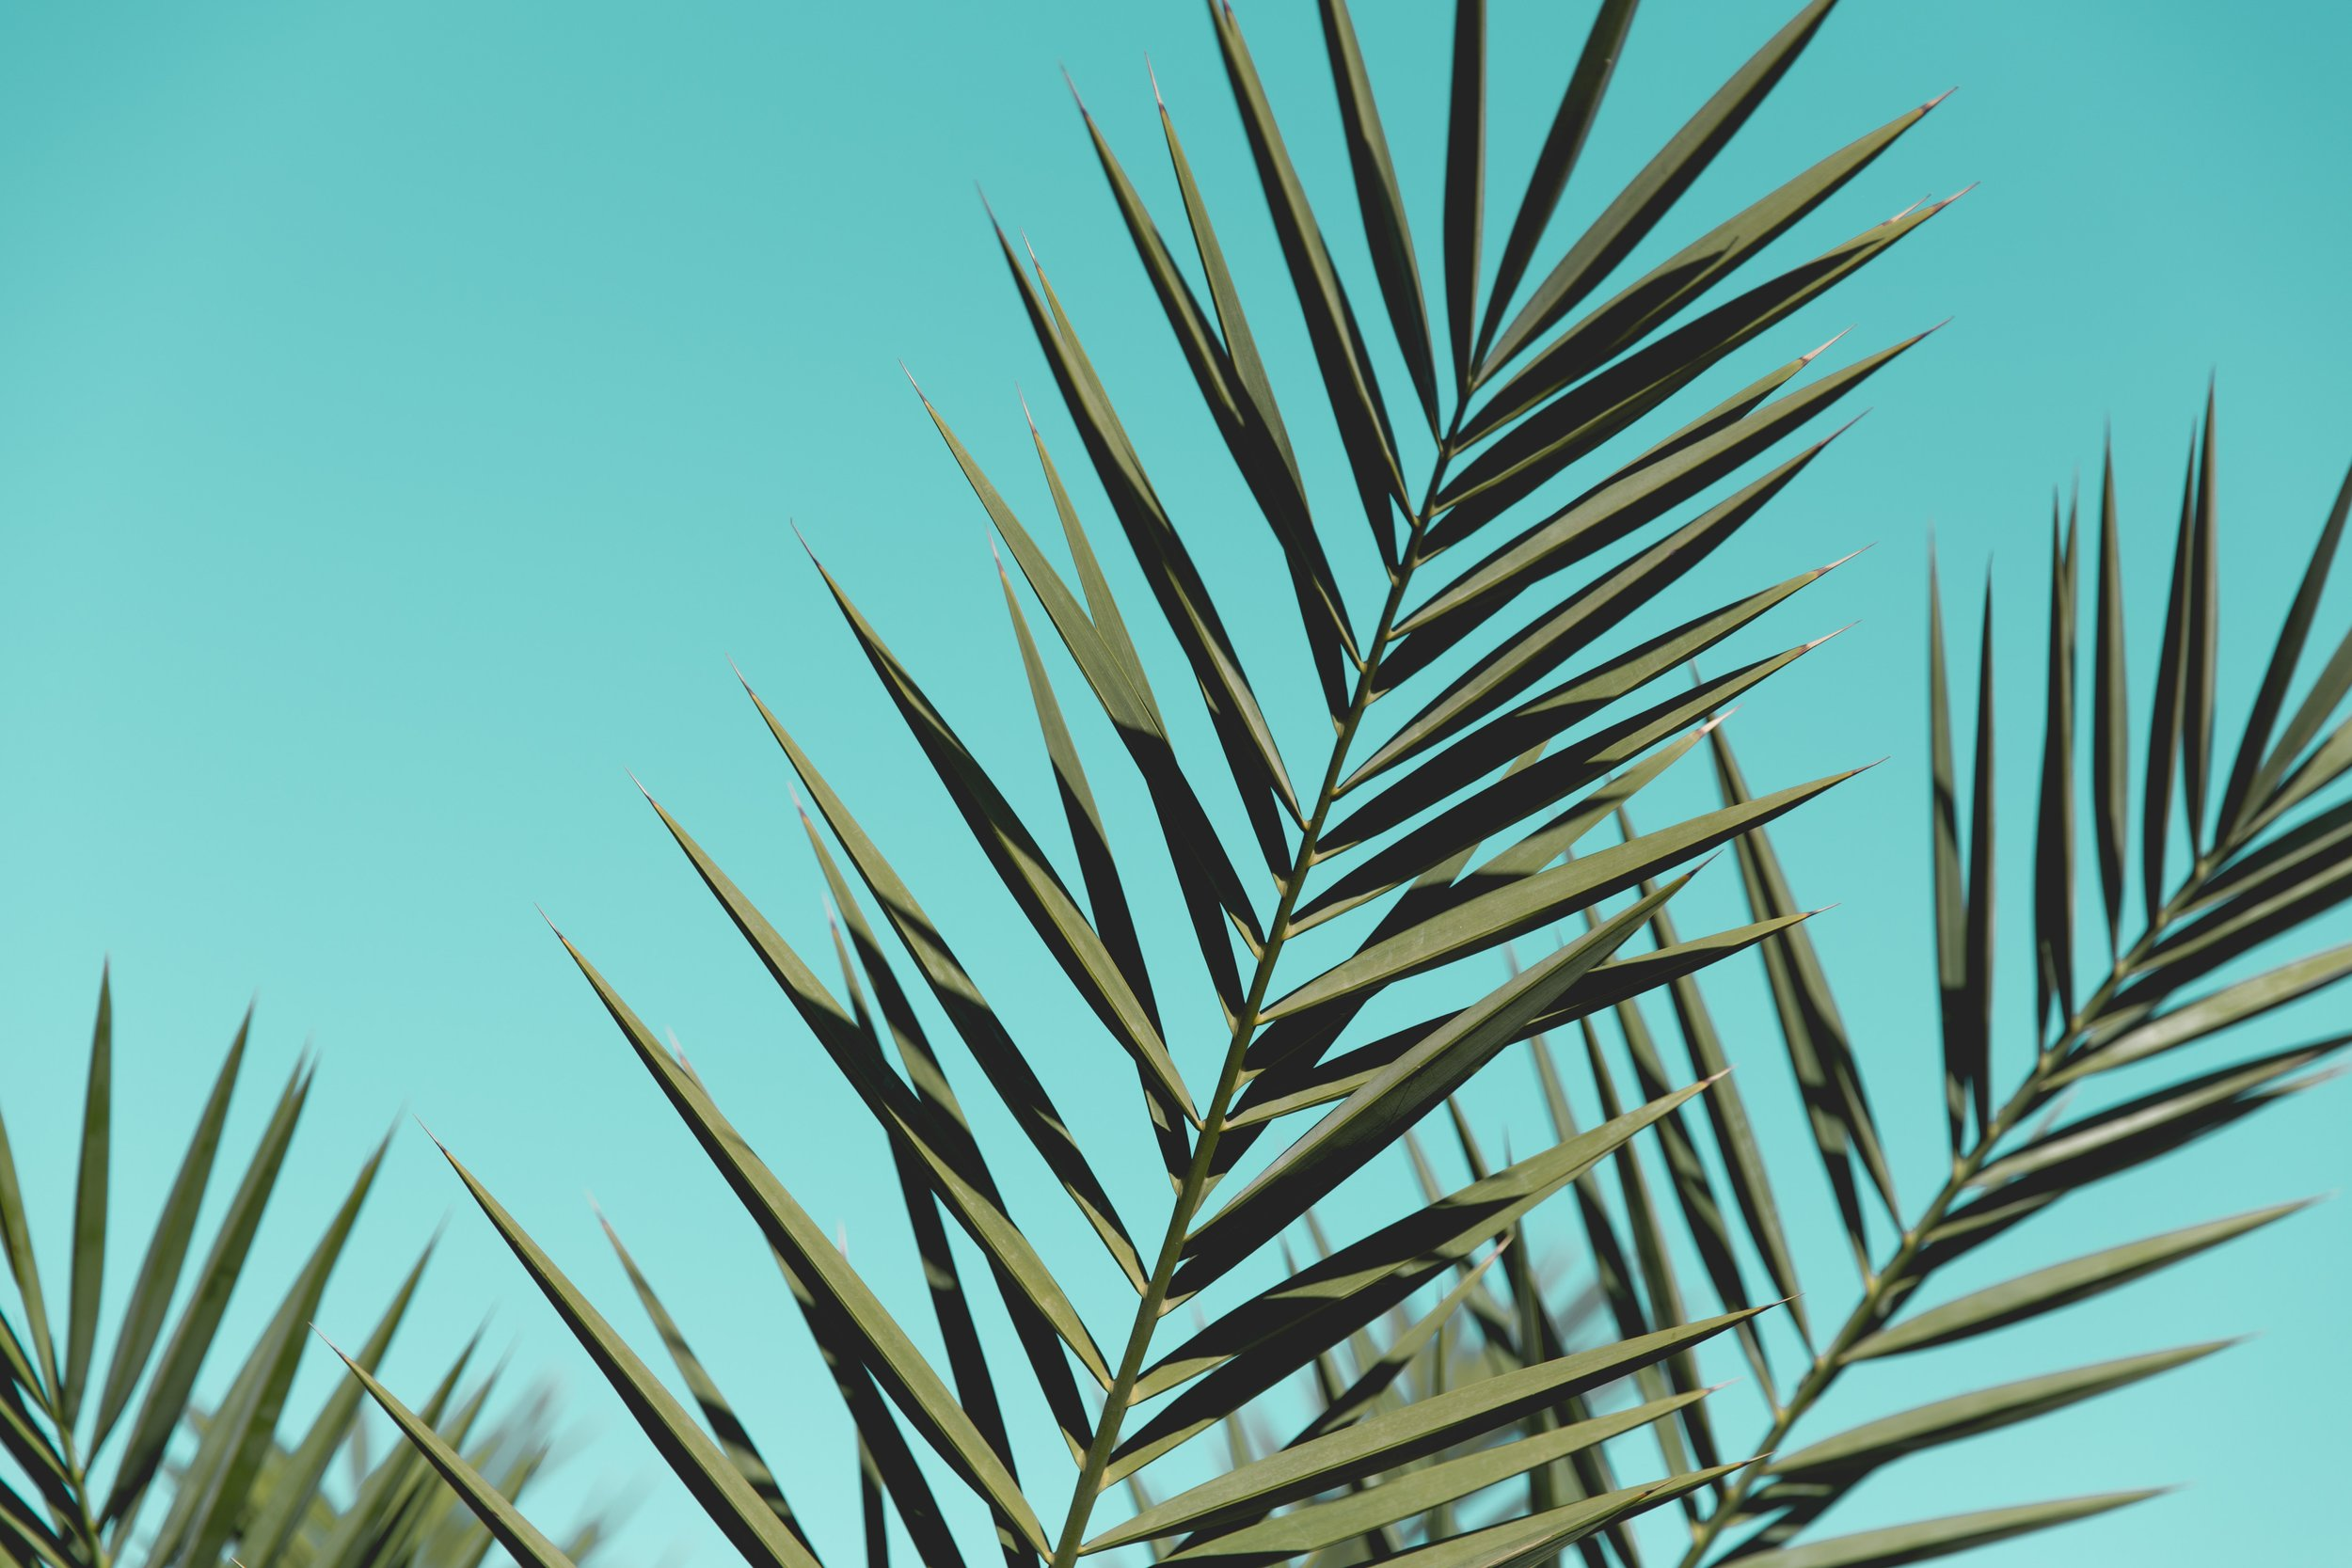 backgrounds-close-up-colors-572487.jpg